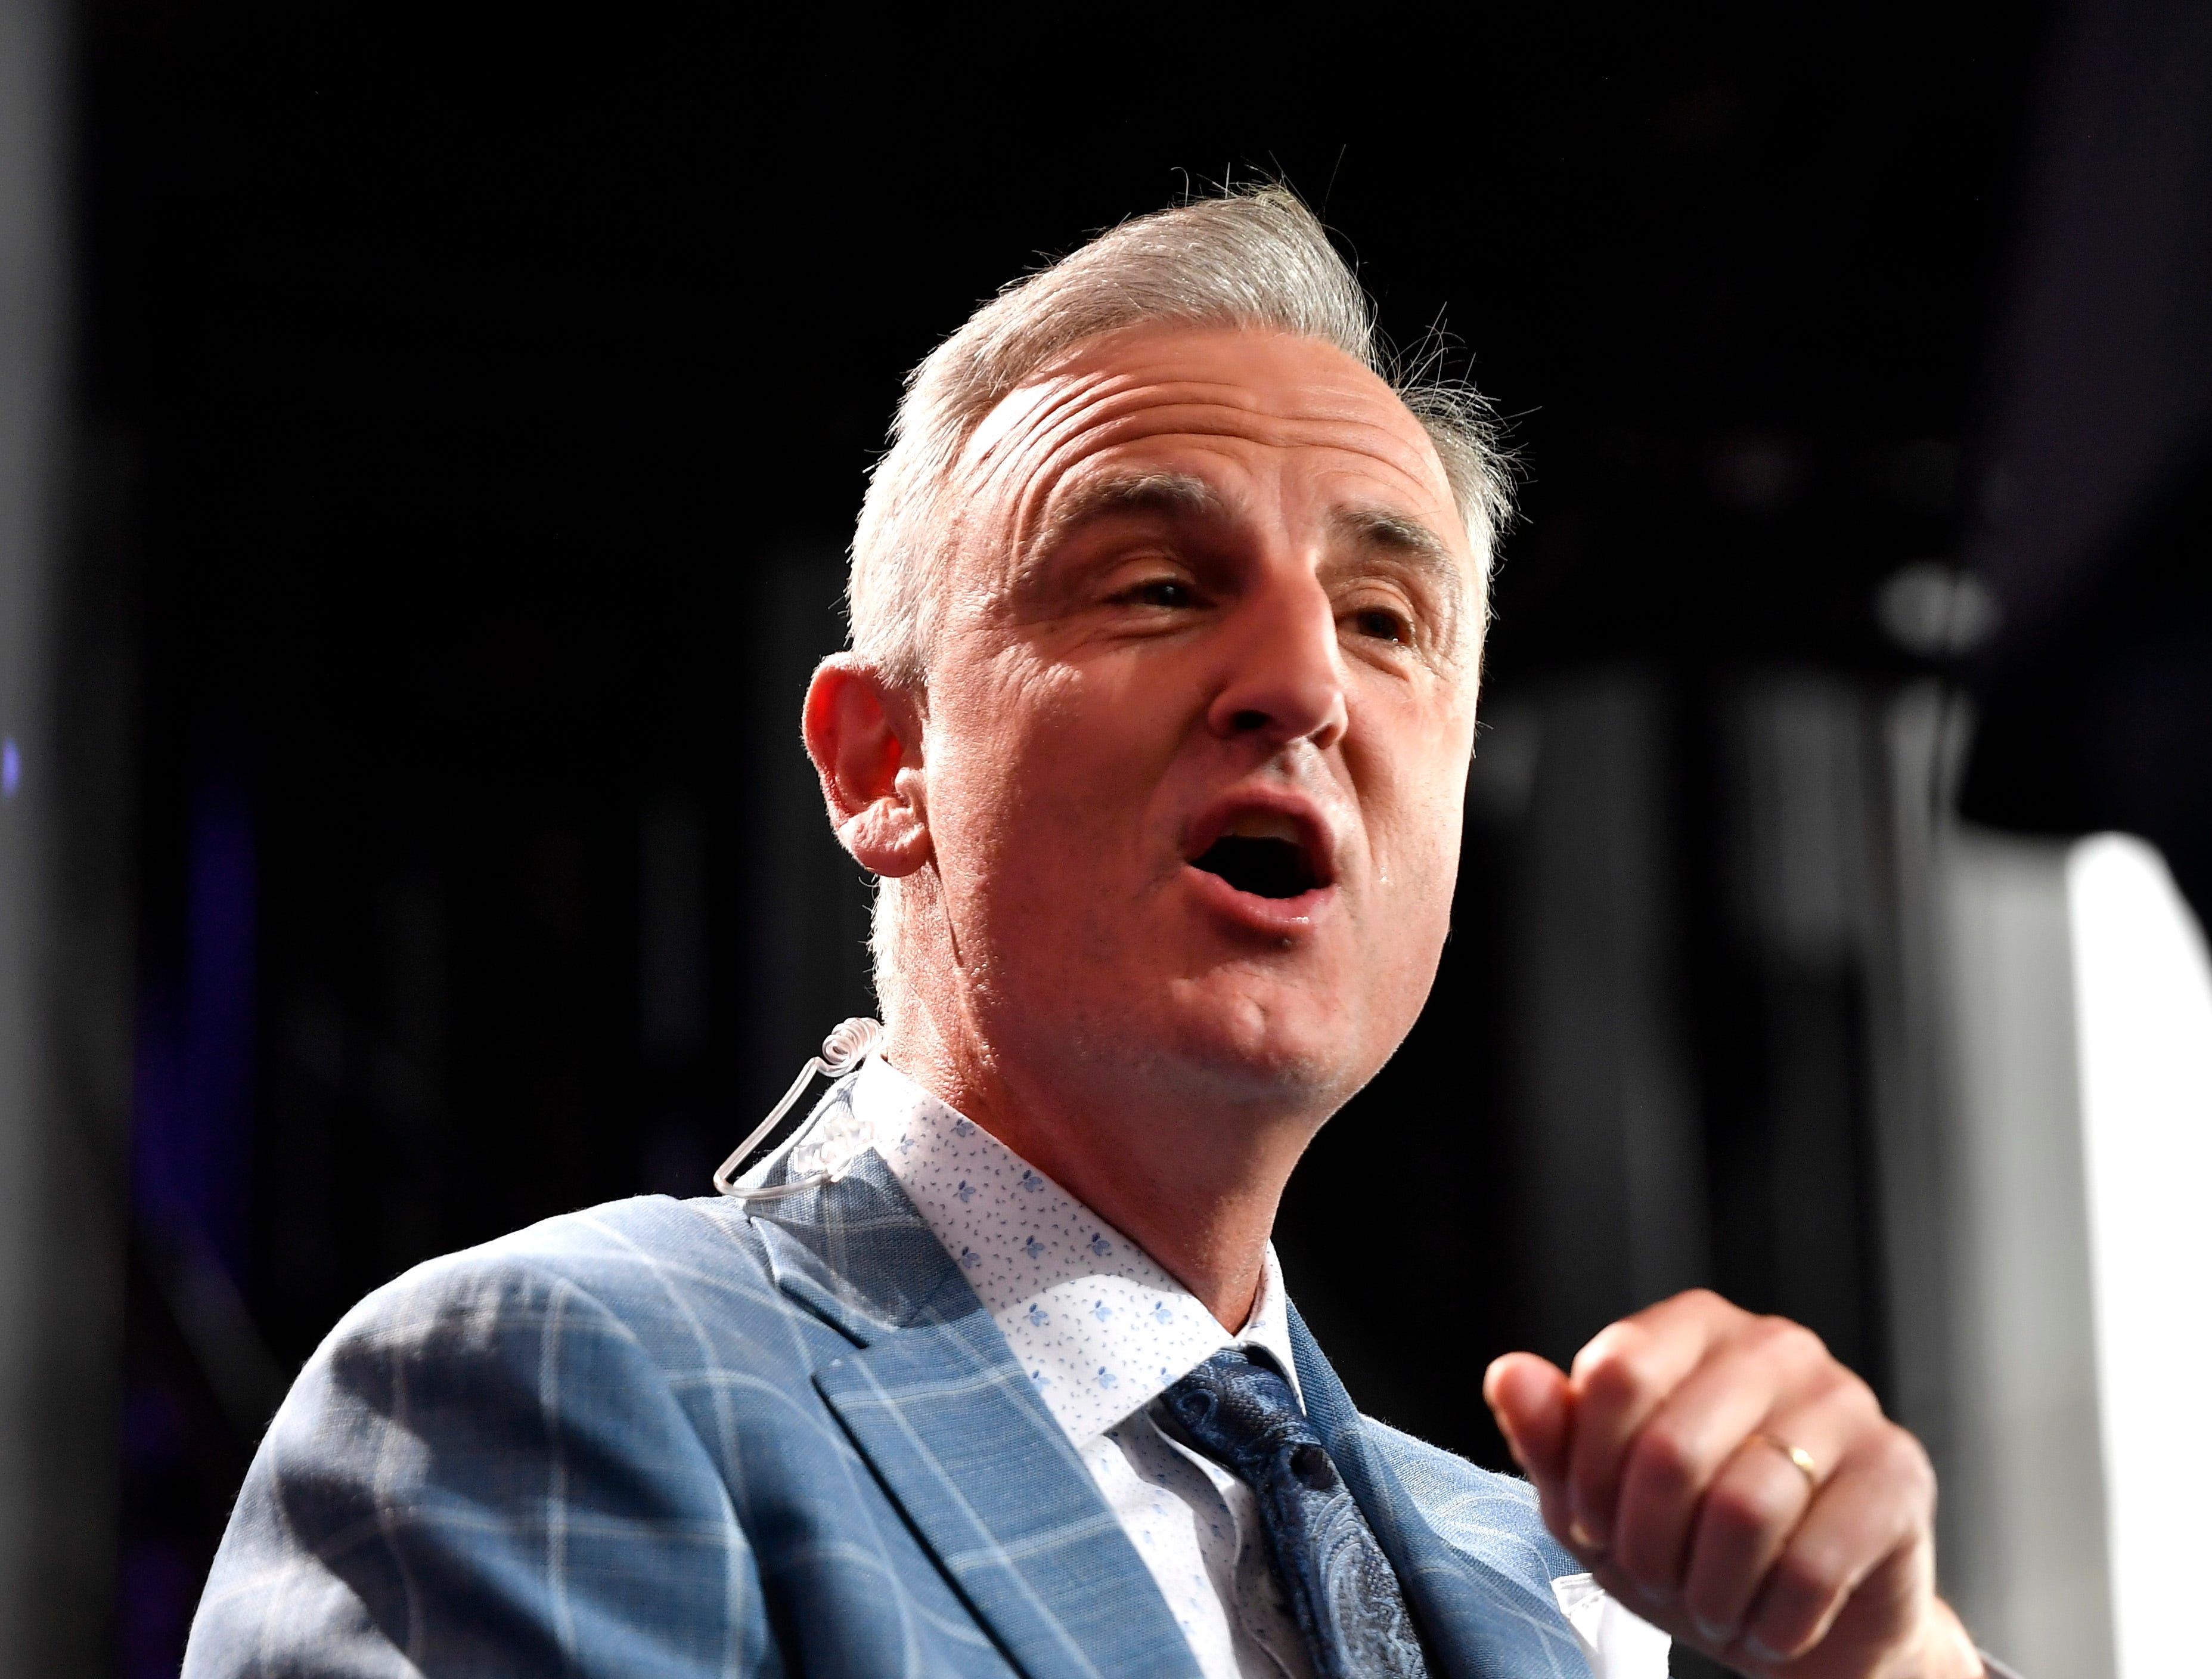 ESPN's Trey Wingo chats before the first round of the NFL Draft Thursday, April 25, 2019, in Nashville, Tenn.